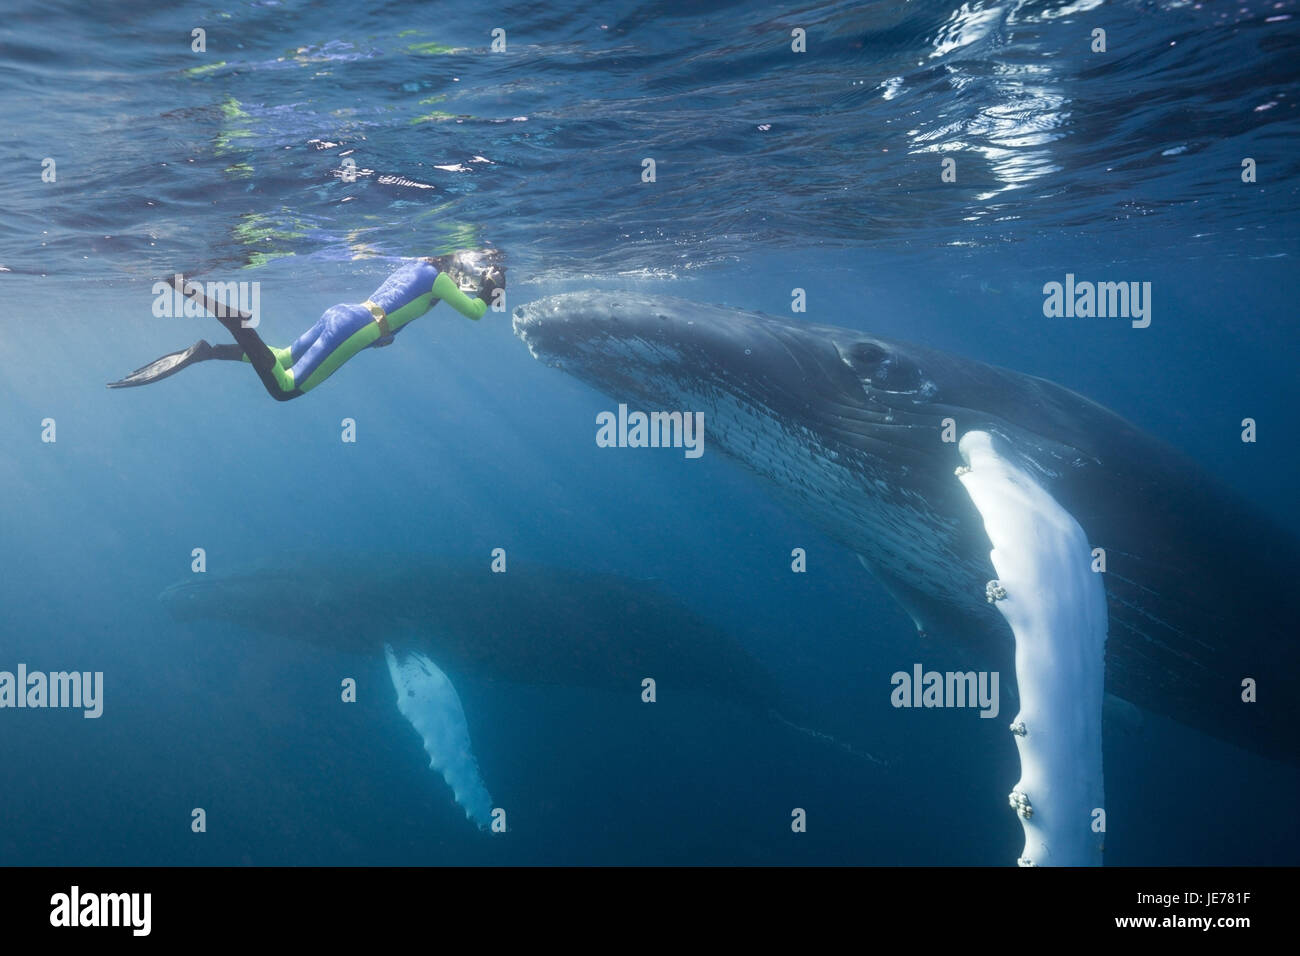 Snorkler and humpback whale, Megaptera novaeangliae, Silver bank, the Atlantic, the Dominican Republic, - Stock Image